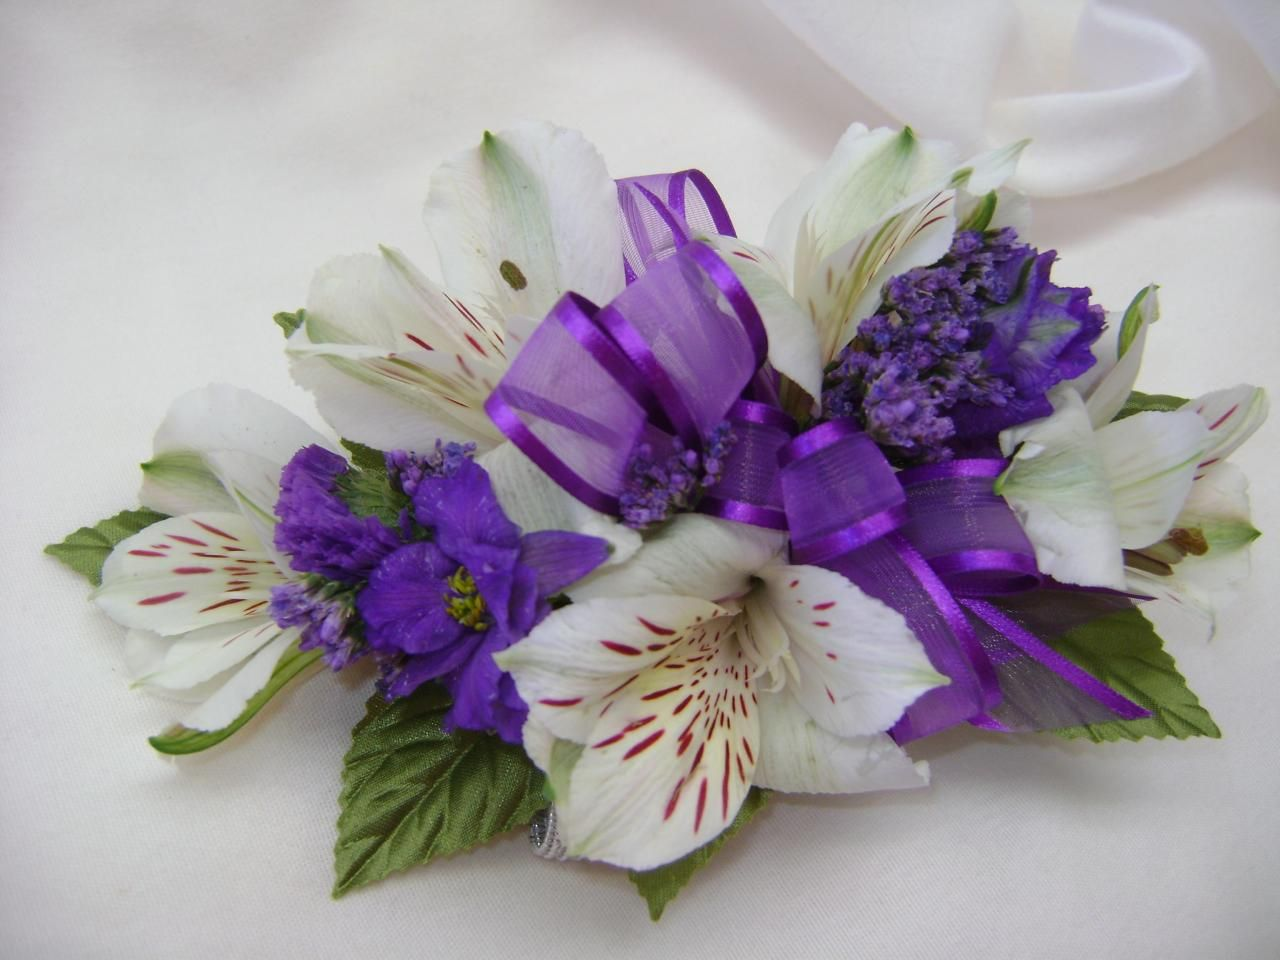 Blue and purple corsages google search kira pinterest blue and purple corsages google search izmirmasajfo Gallery